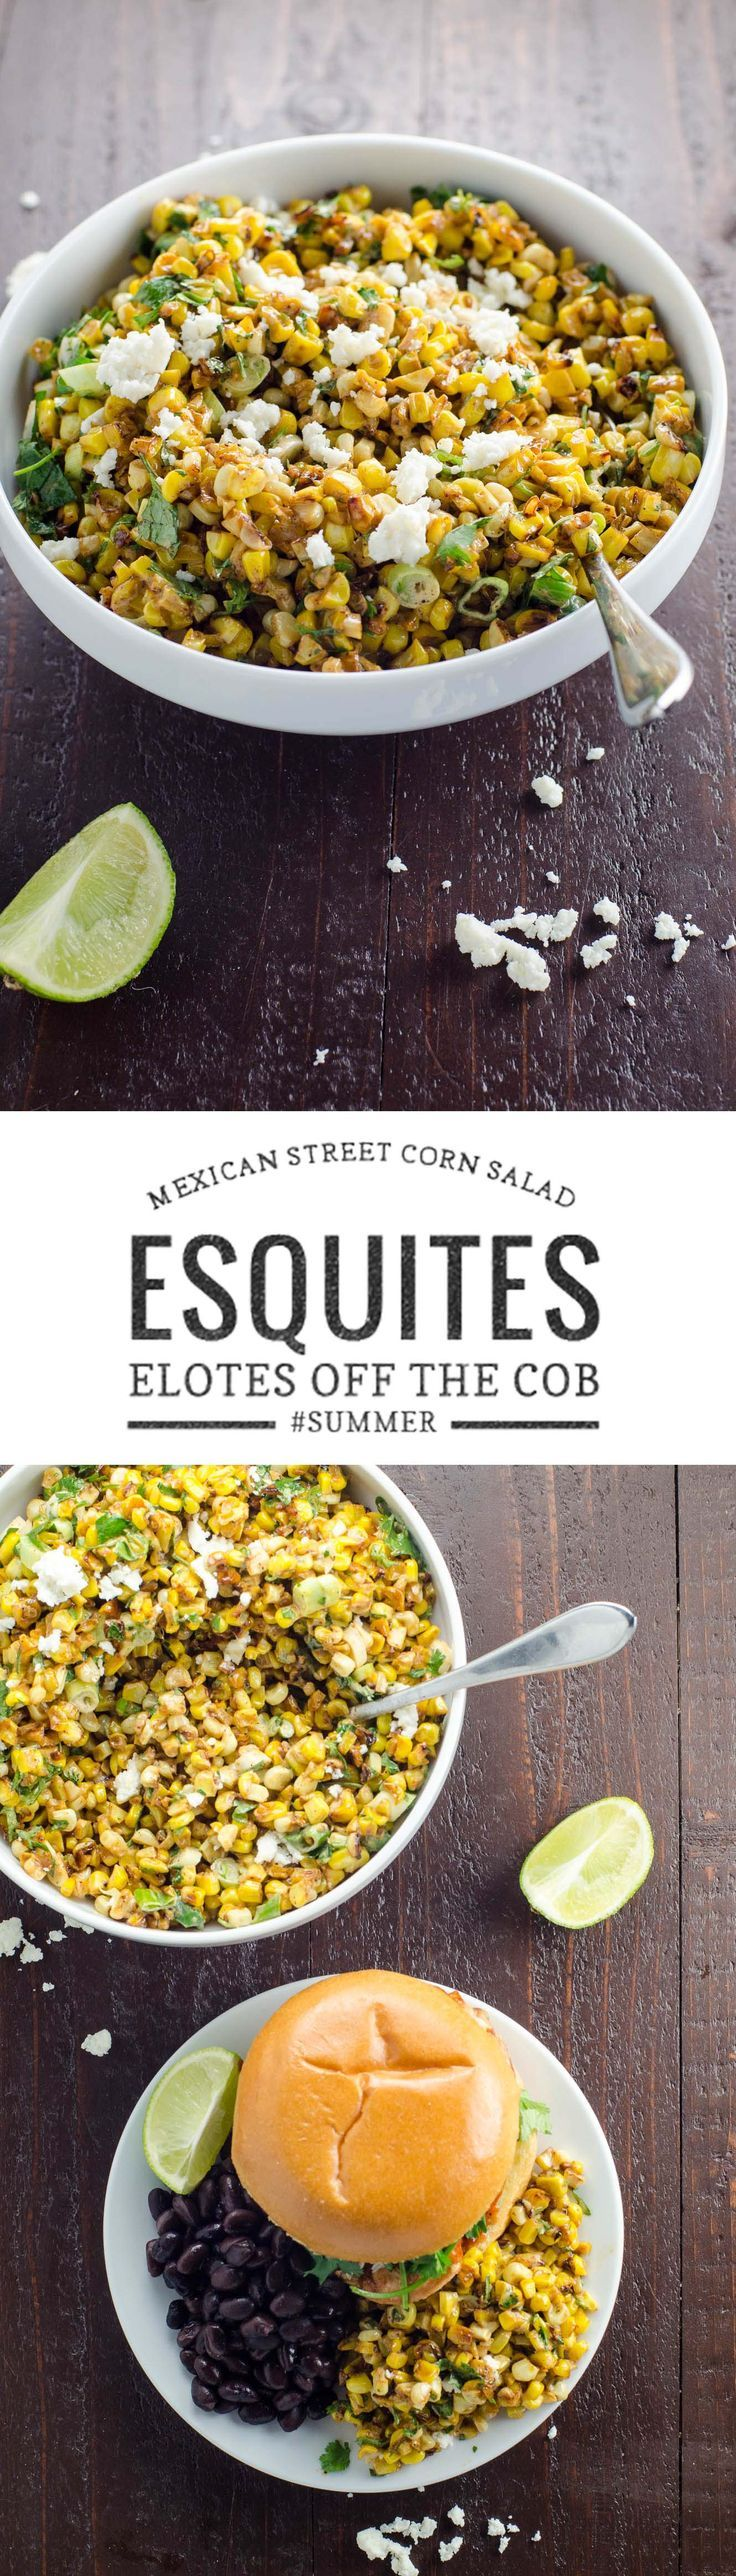 Esquites, or Mexican street corn salad, is a wonderful savory side dish that you won't be able to get enough of. It's quick to make and scales beautifully. via @umamigirl